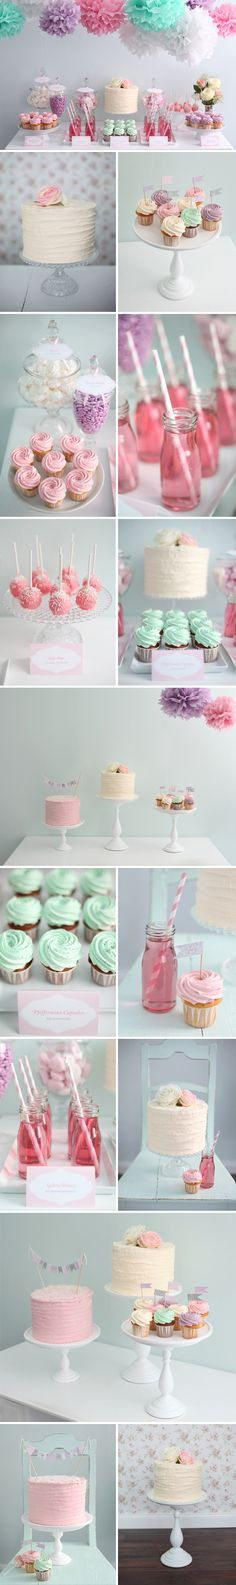 Best cupcakes ideas for baby shower girl birthday parties Ideas Baby Birthday, First Birthday Parties, 1st Birthdays, Birthday Table, Birthday Ideas, Birthday Cupcakes, Party Cupcakes, Girl Cupcakes, Festa Party